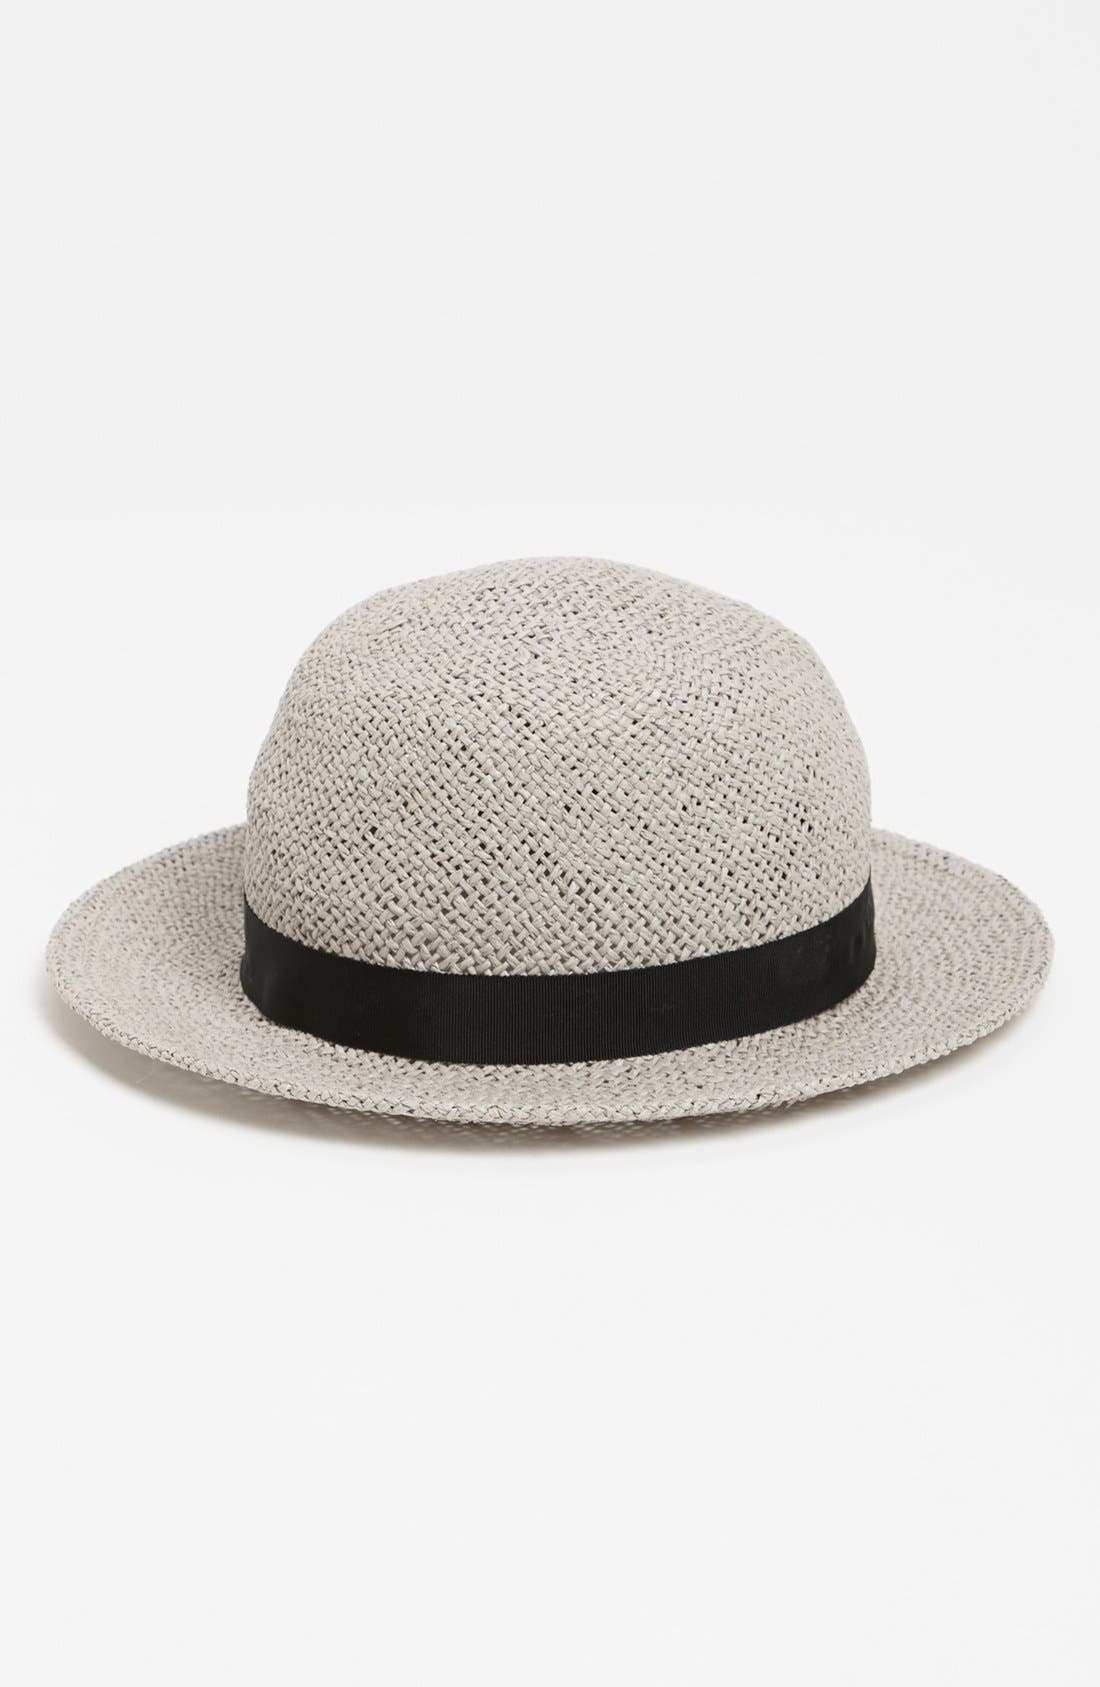 Alternate Image 1 Selected - Topshop Wide Brim Straw Cloche